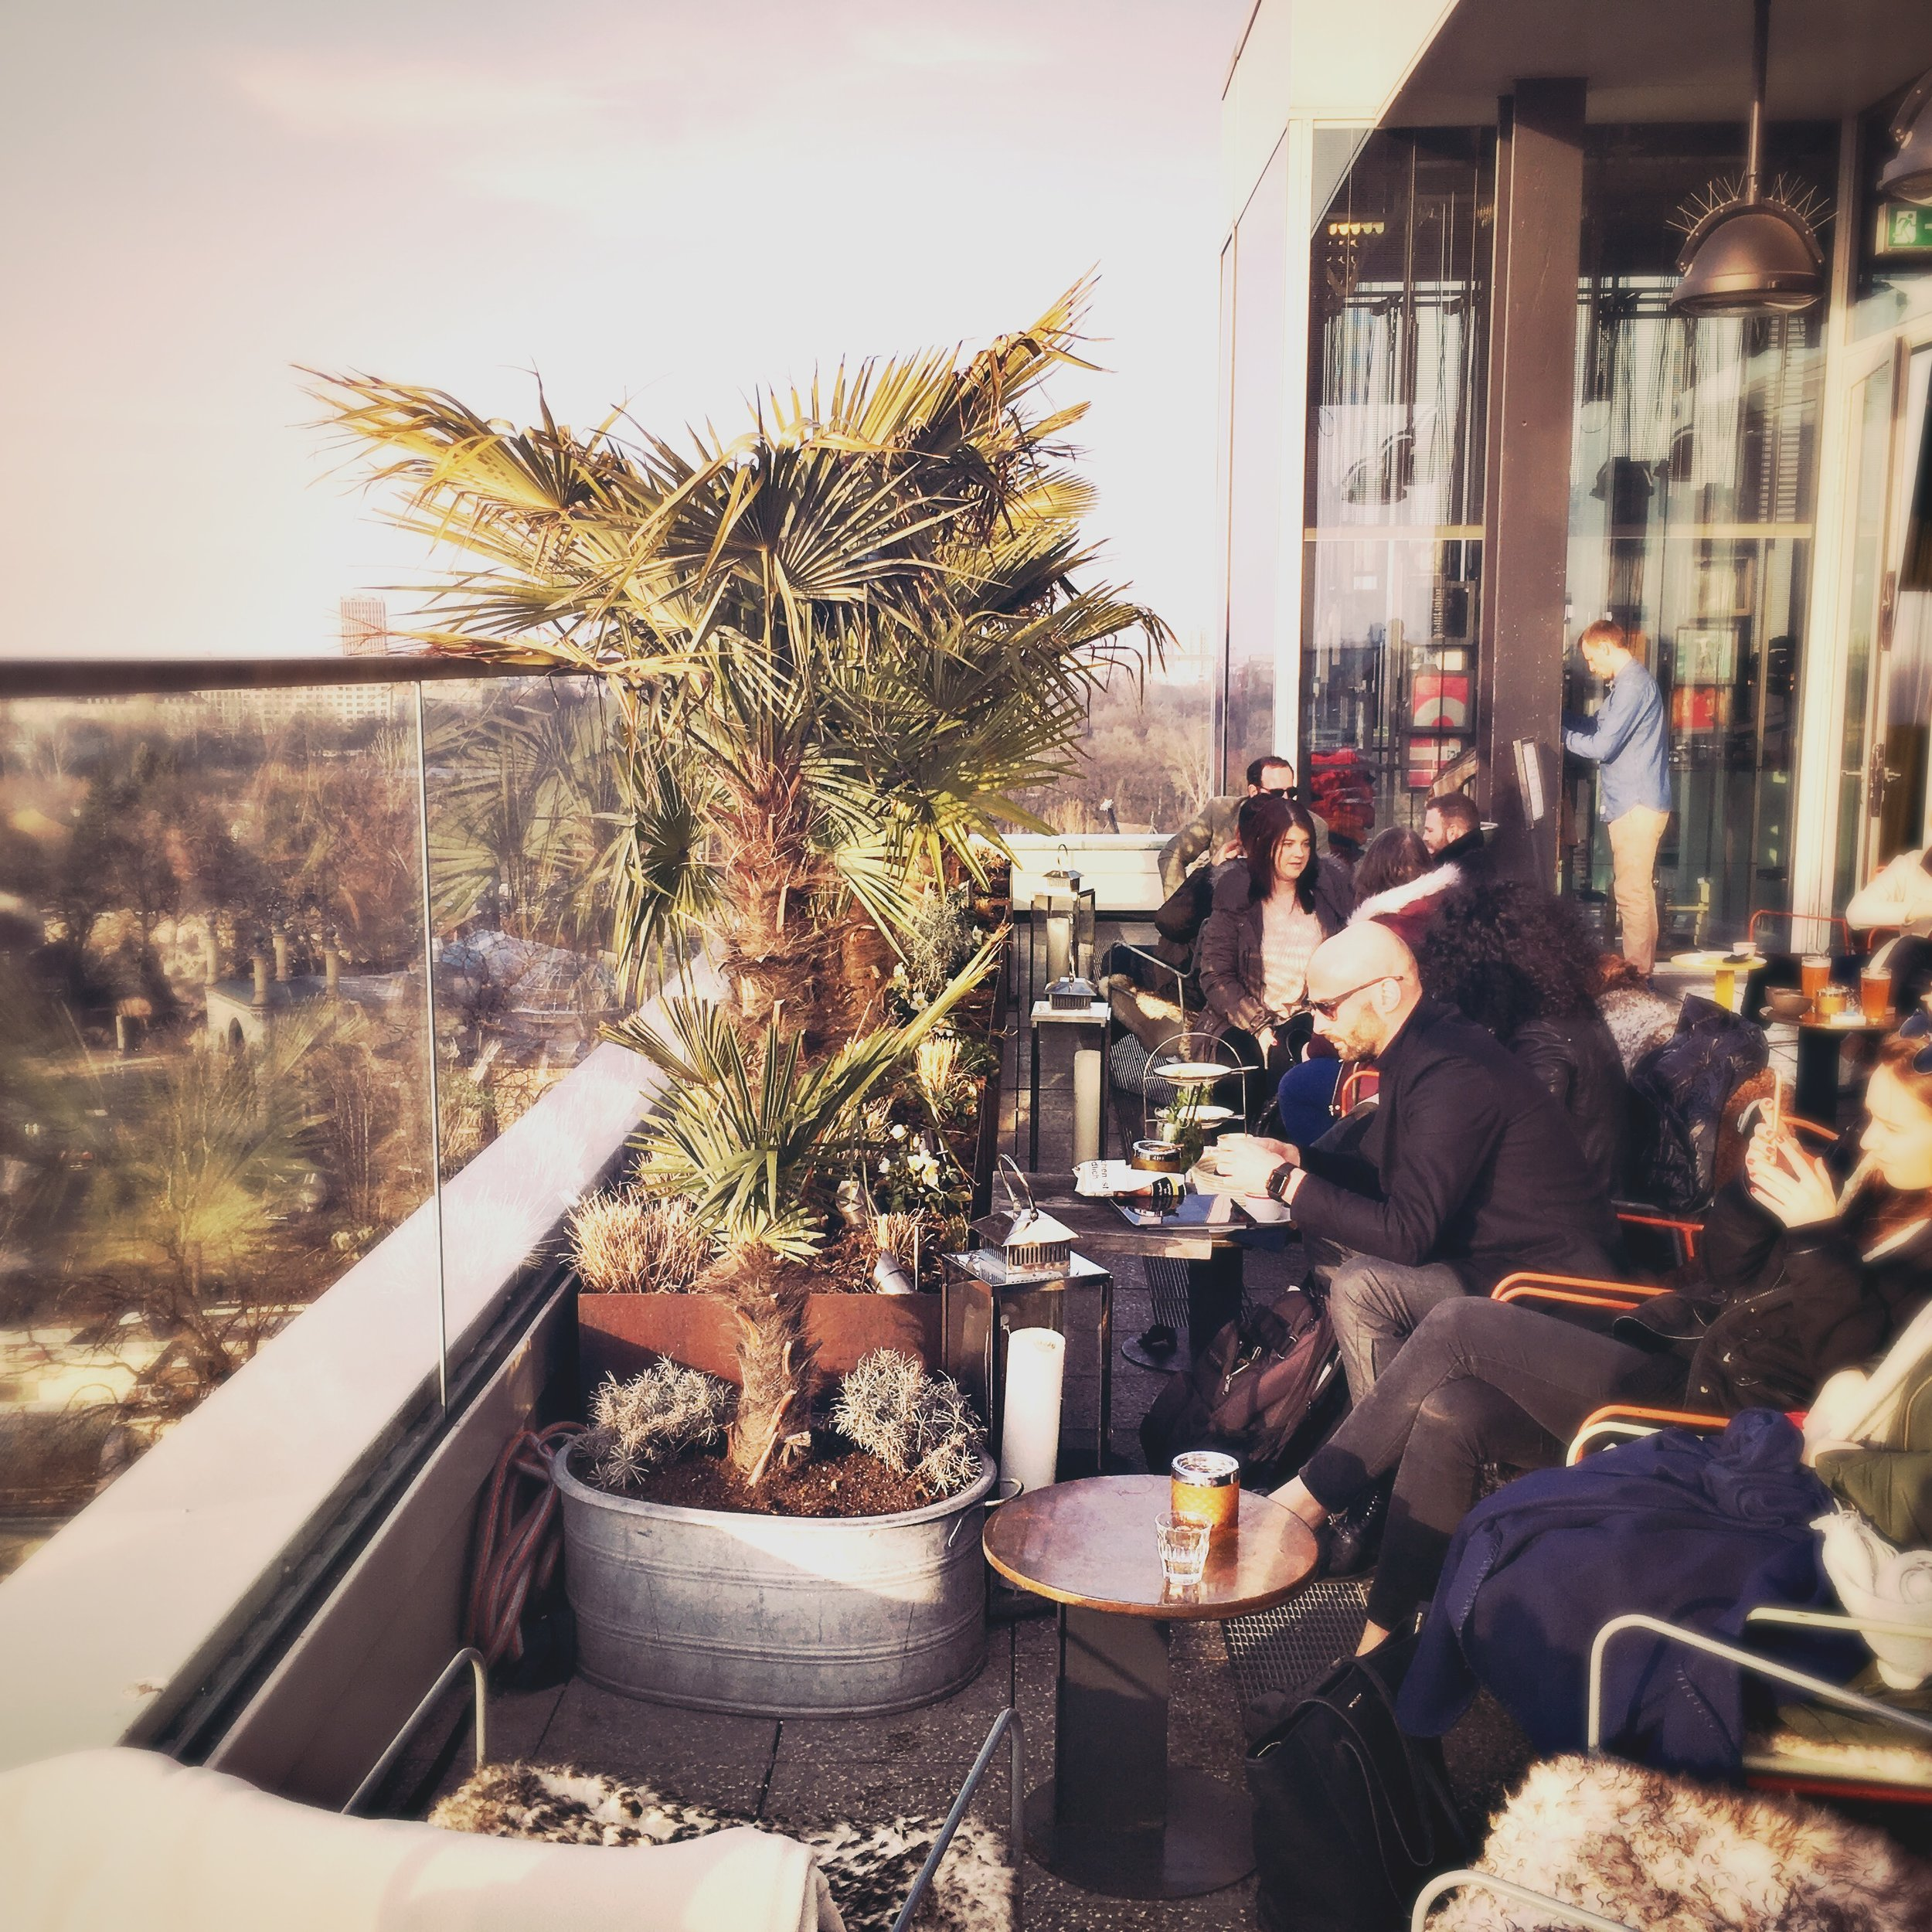 Schönste Dachterrasse in der City West.